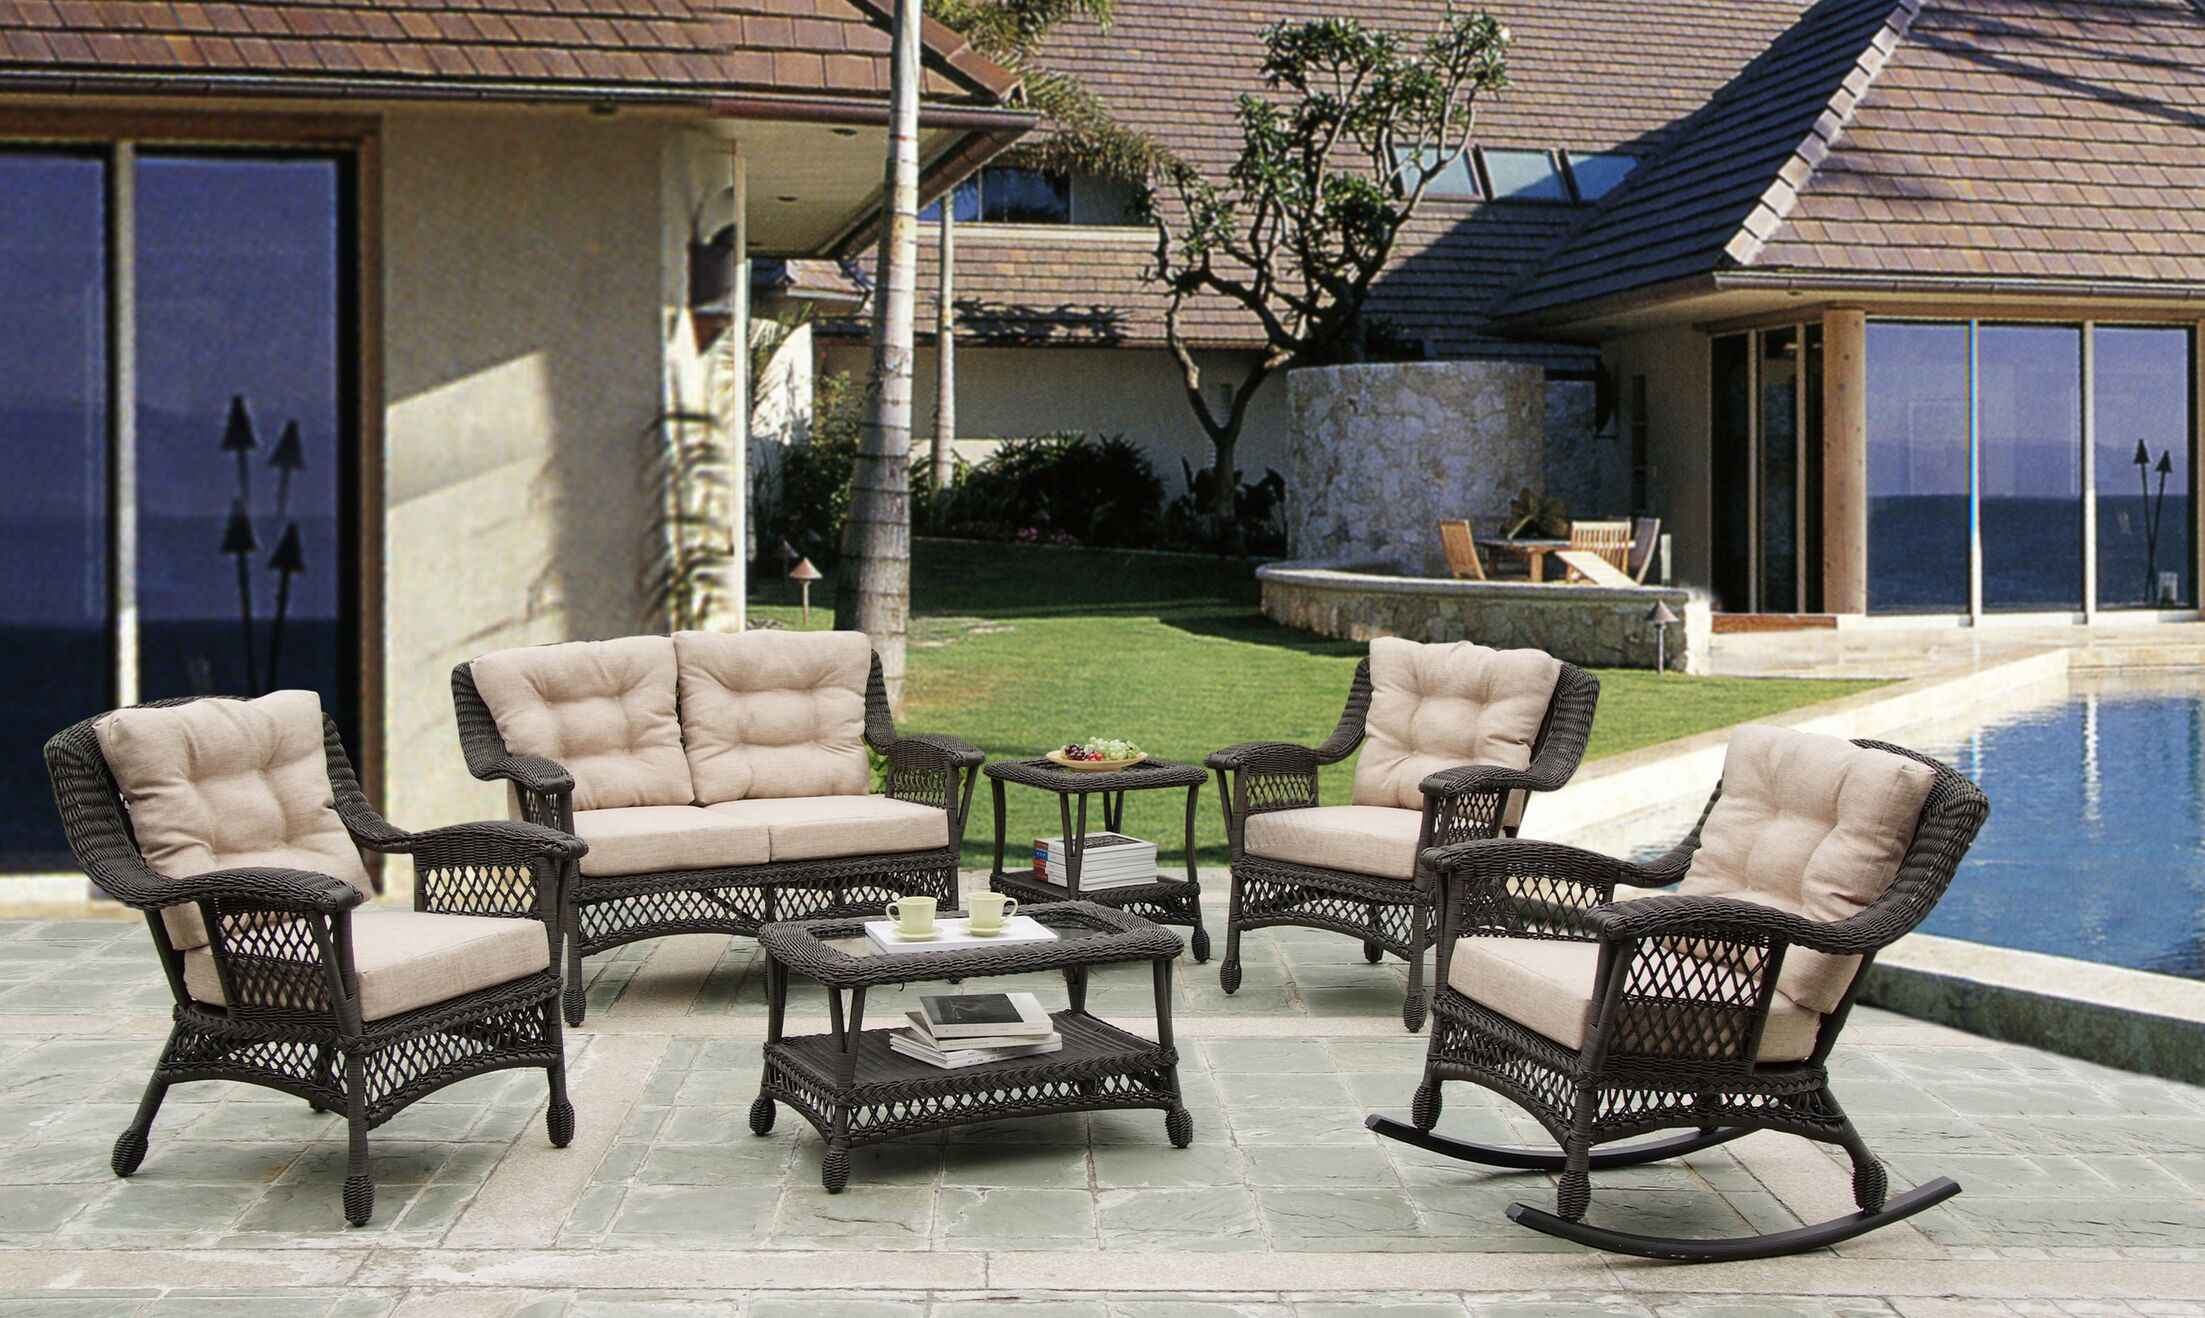 Procter 6 Piece Rattan Conversation Set with Cushions